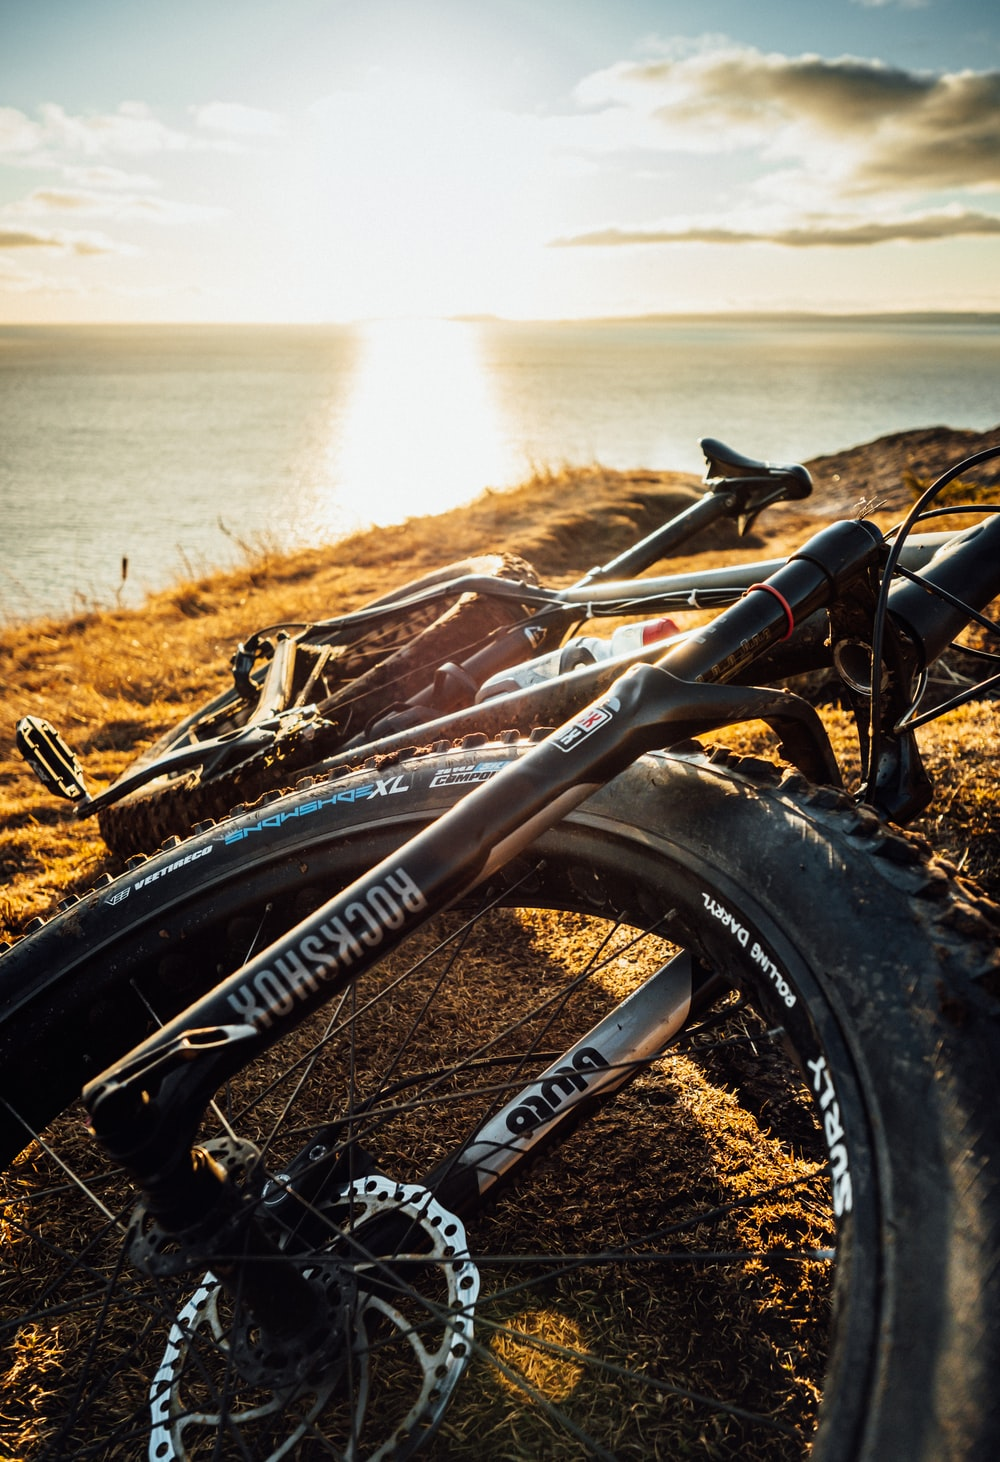 black bicycle on brown grass near body of water during daytime